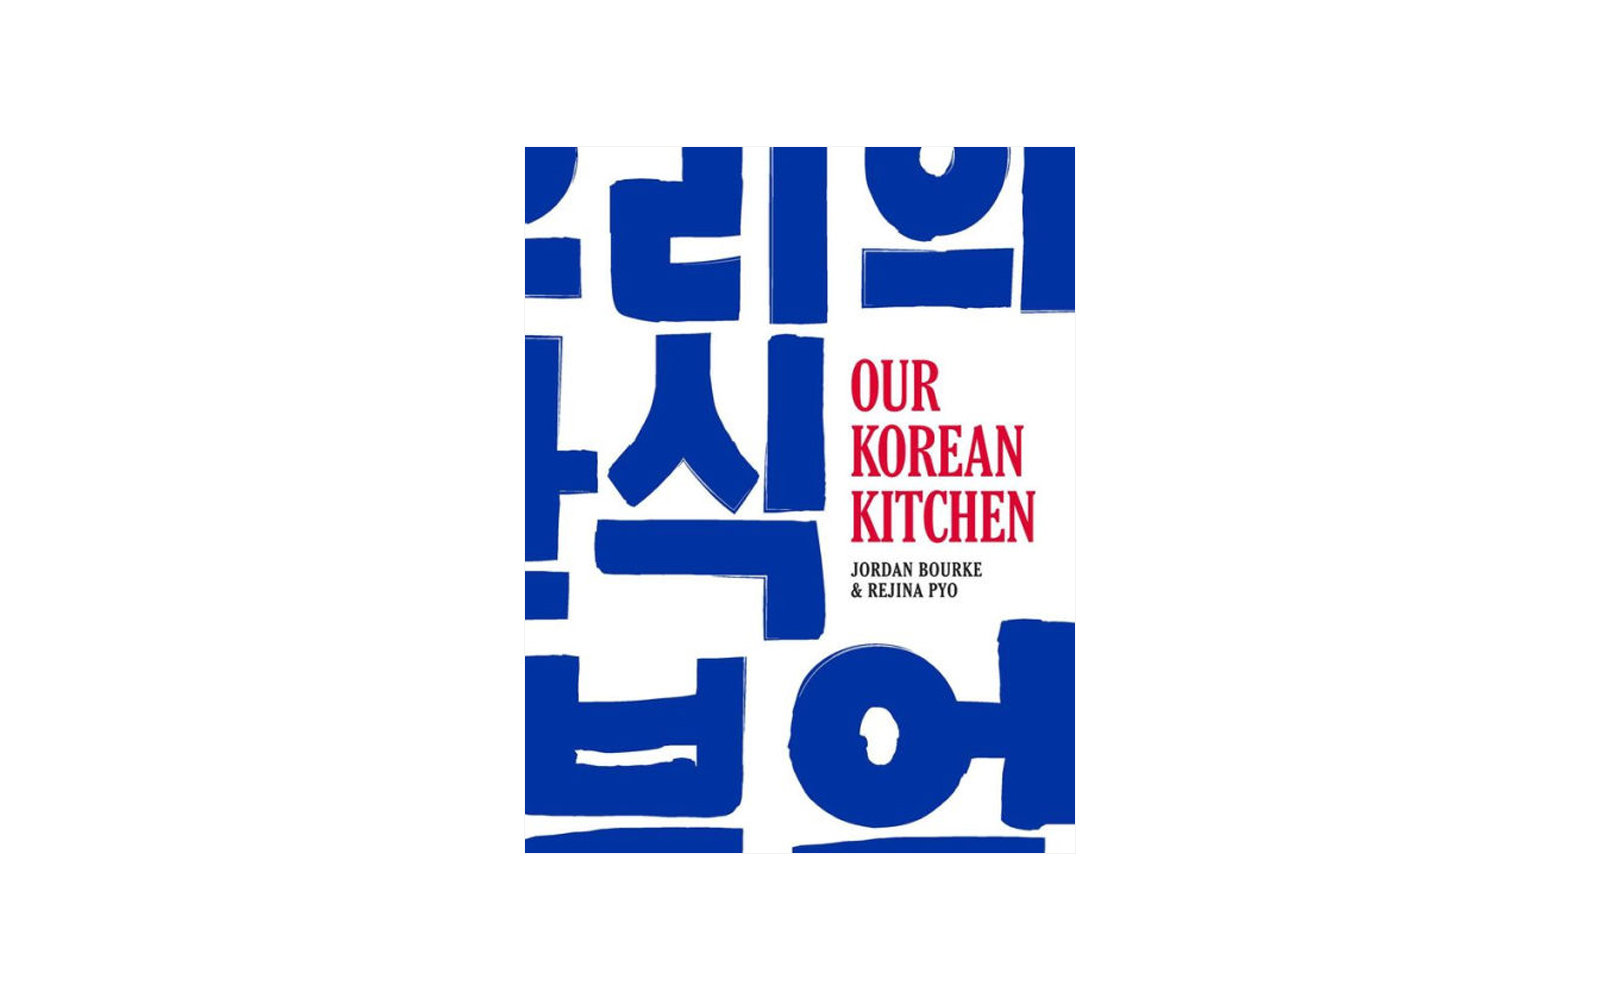 Our Korean Kitchen, by Jordan Bourke and Rejina Pyo